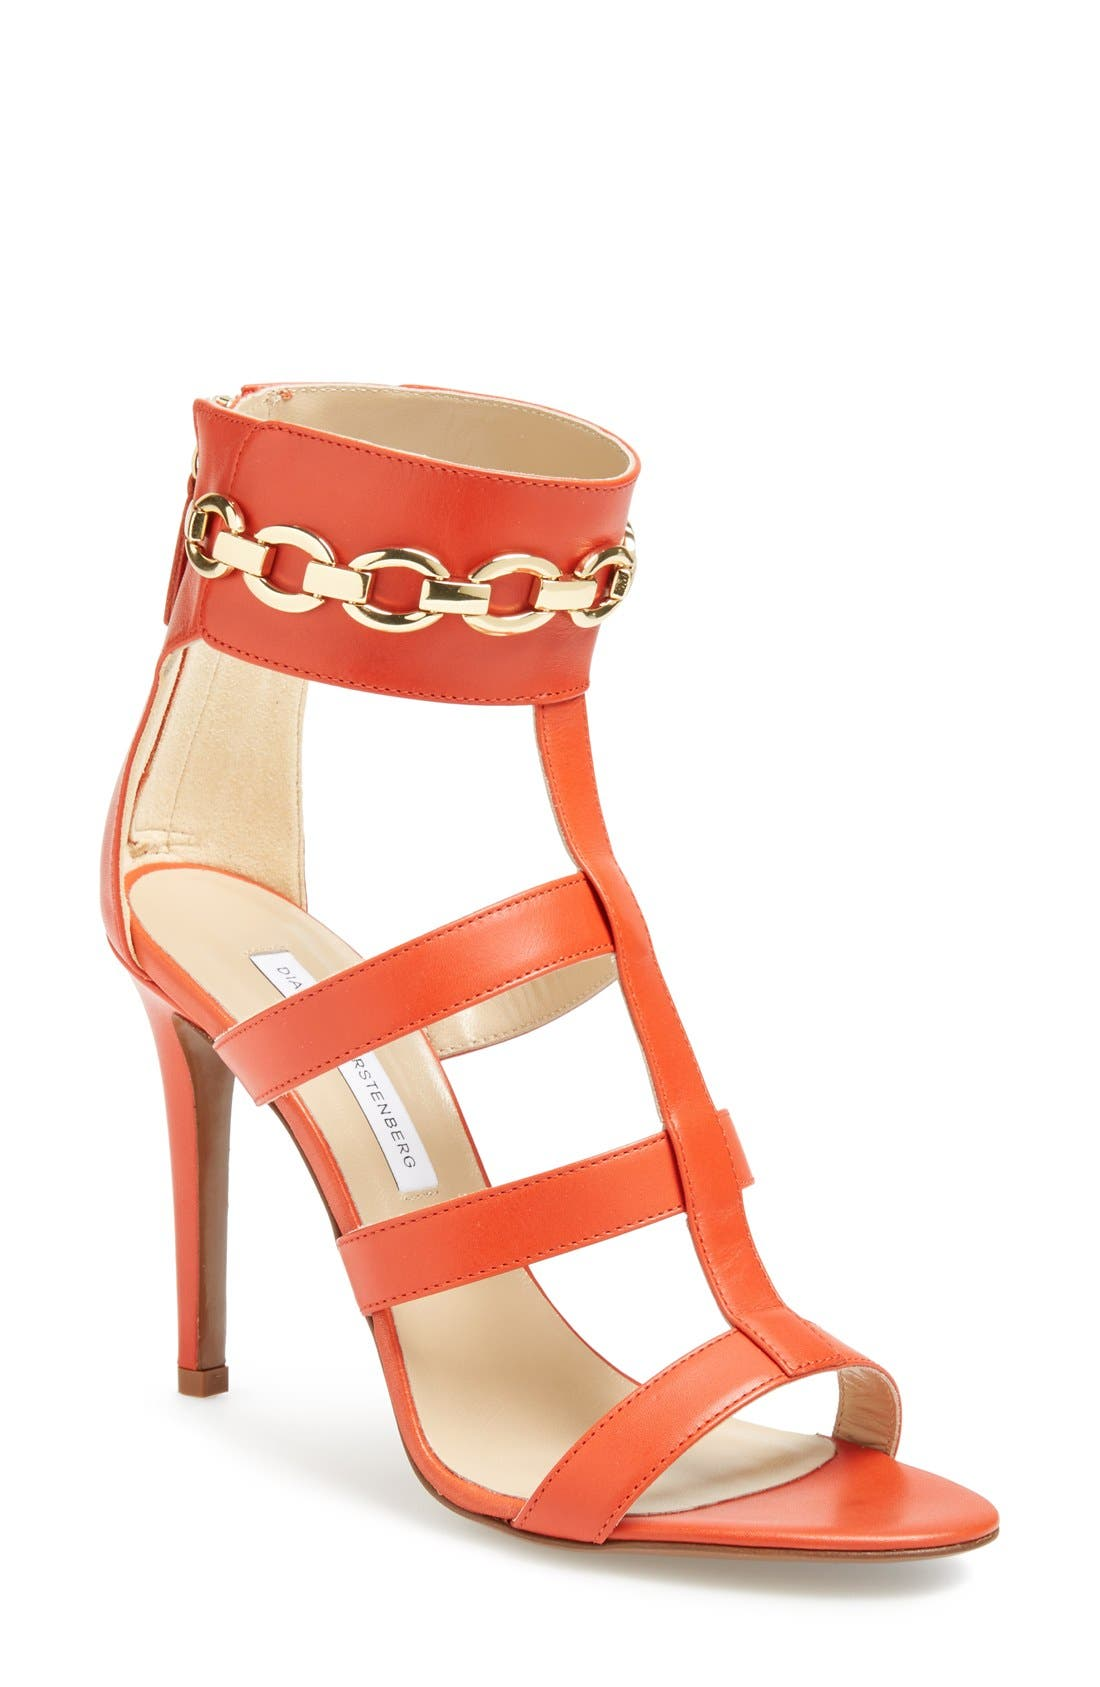 Alternate Image 1 Selected - Diane von Furstenberg 'Uma' Leather Sandal (Women)